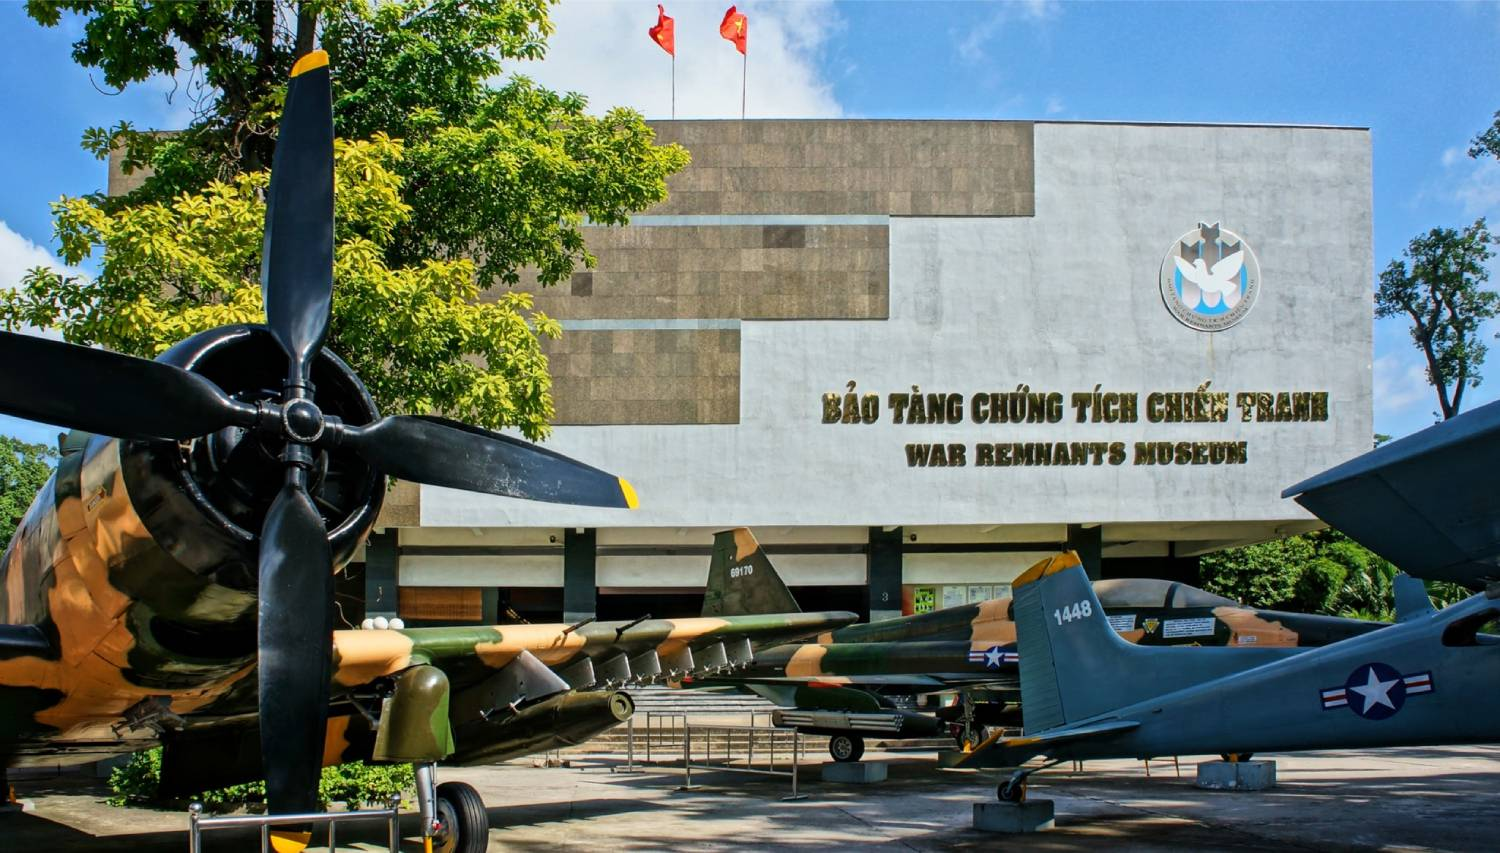 War Remnants Museum - Things To Do In Ho Chi Minh City